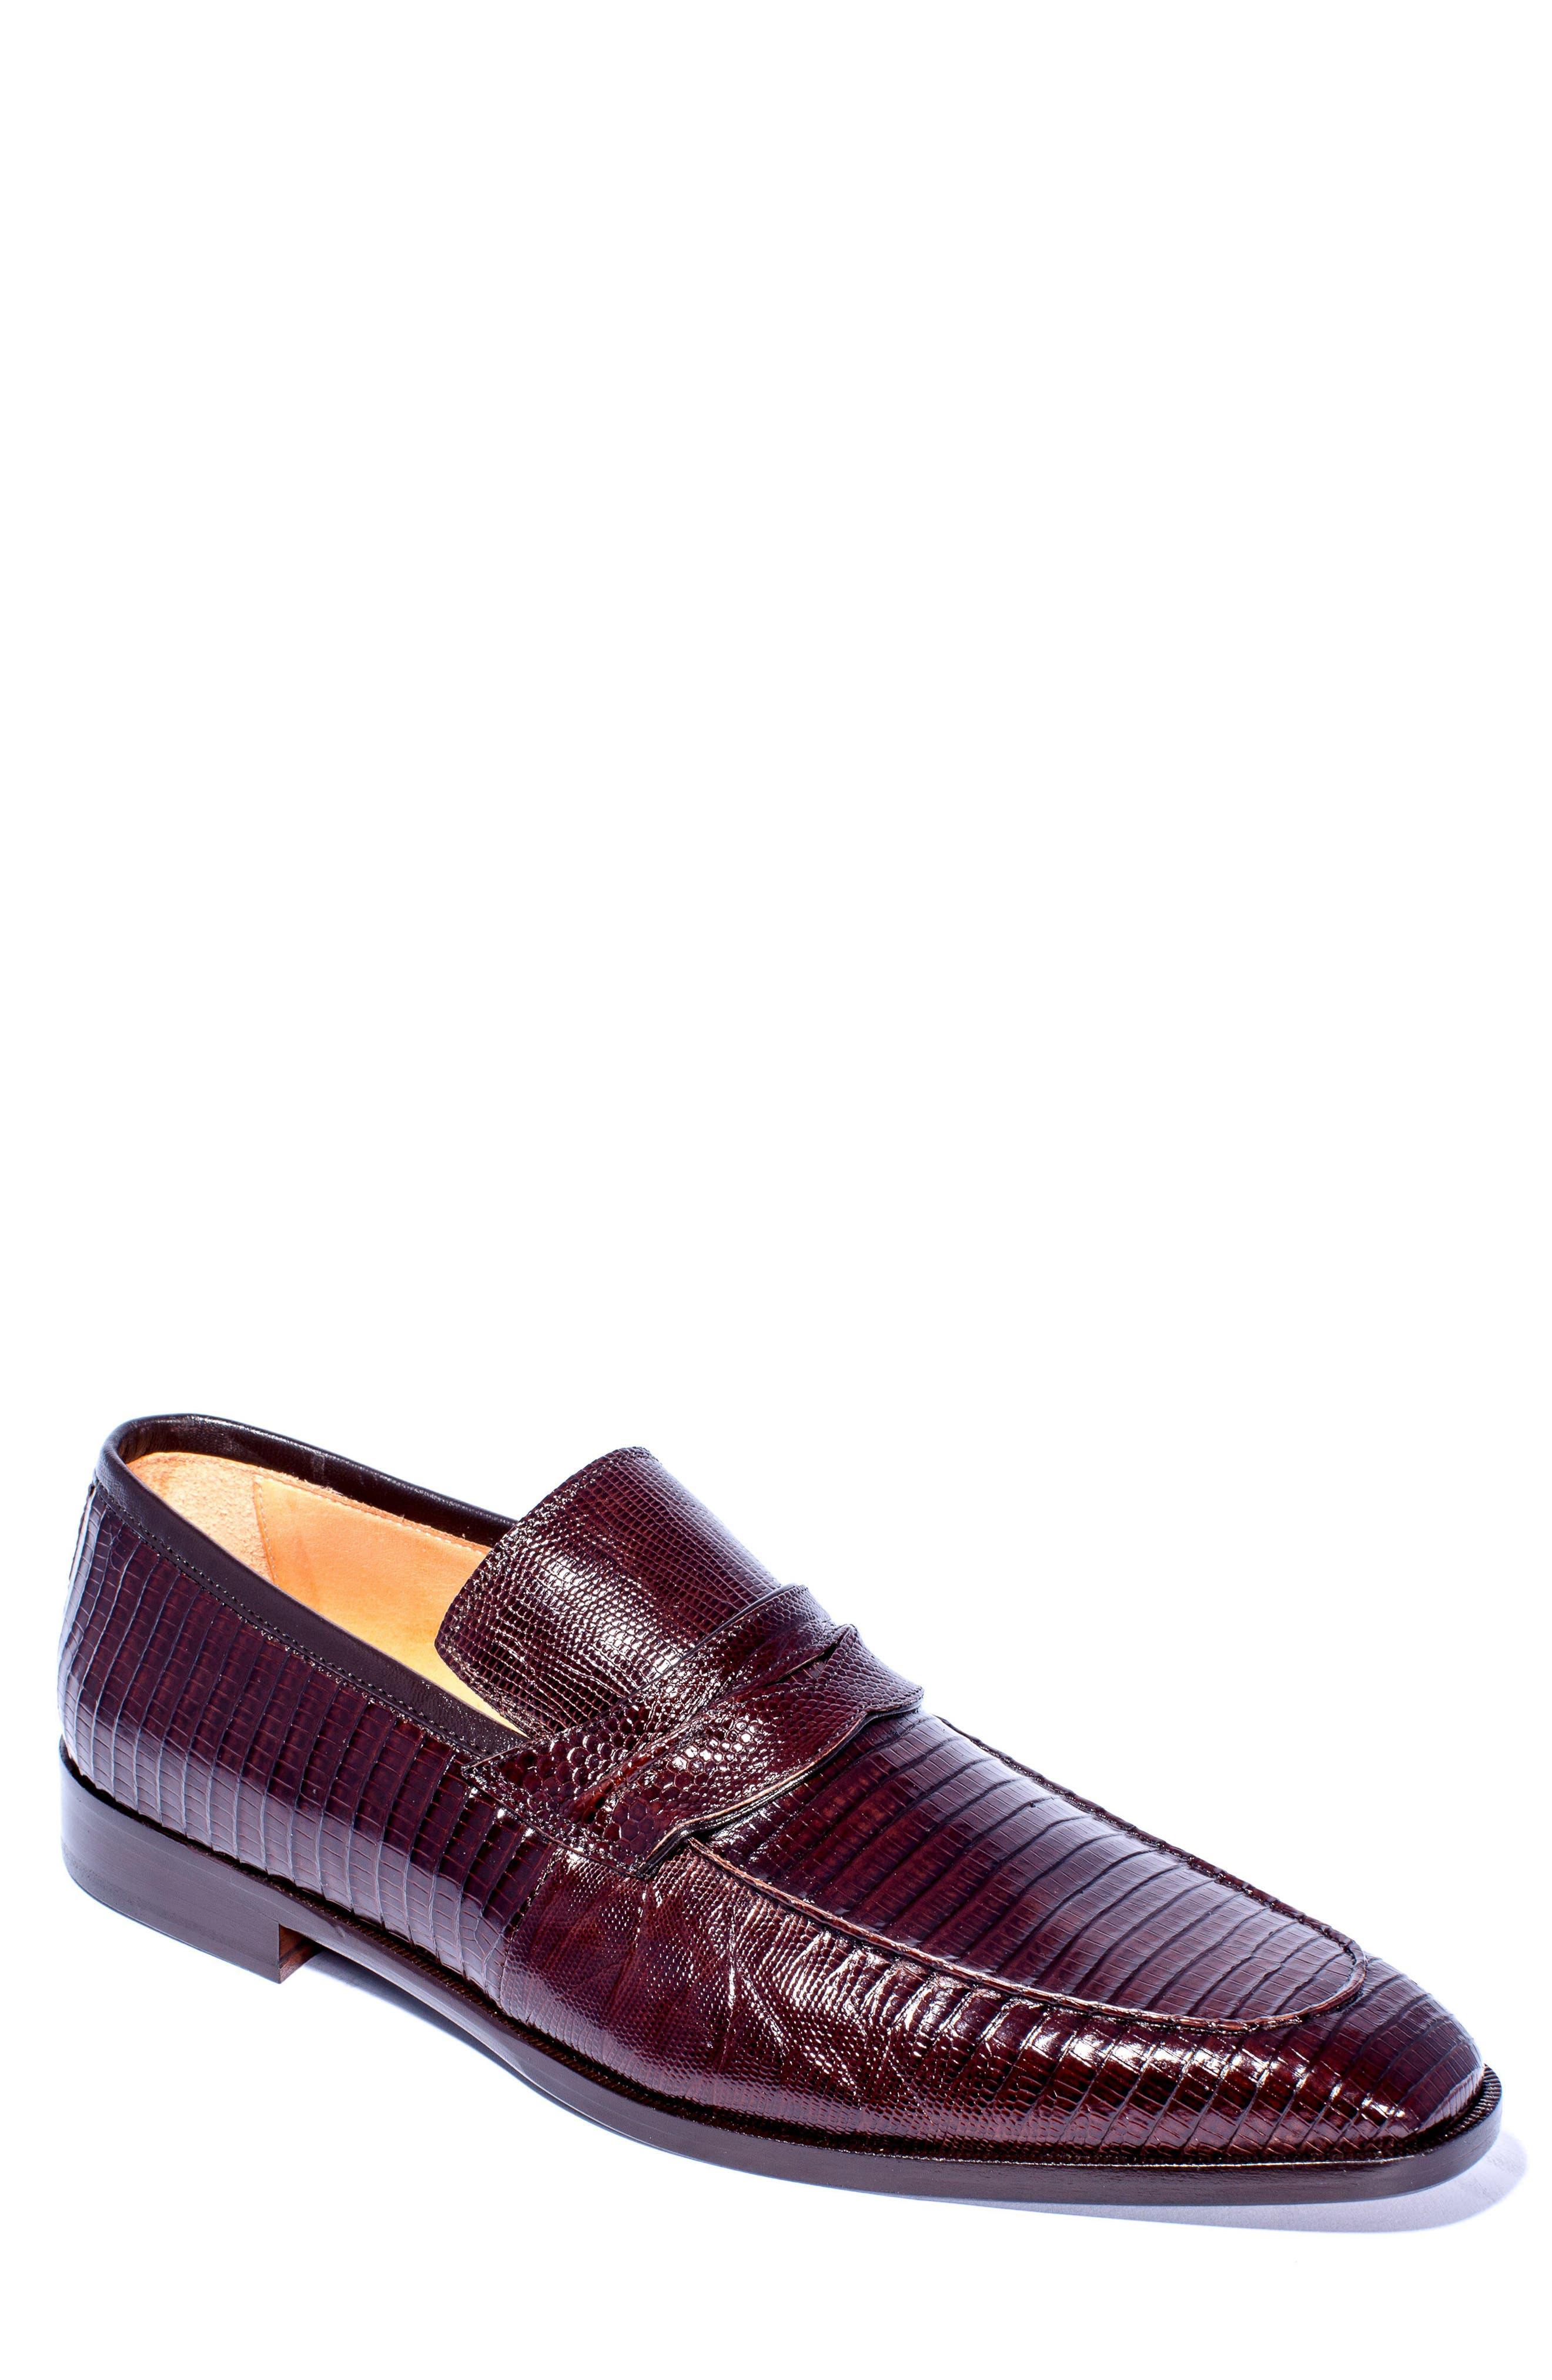 Meo Penny Loafer,                         Main,                         color, 201